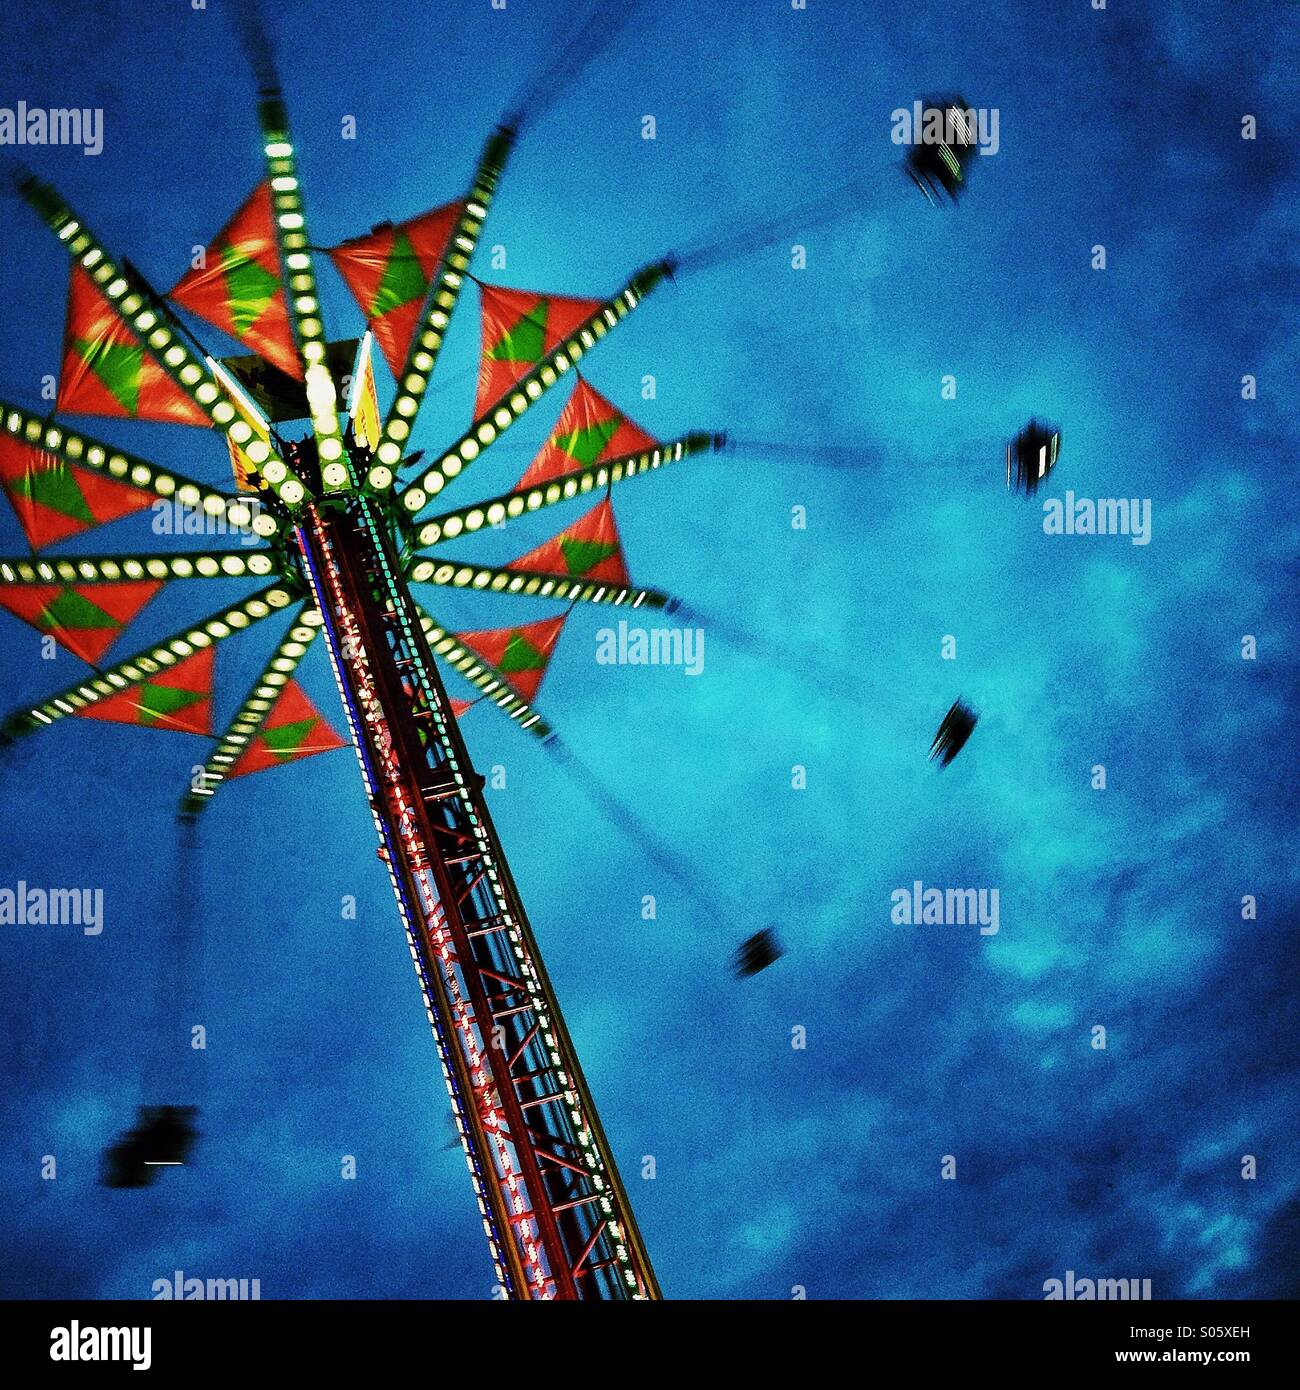 County fair thrill ride - Stock Image